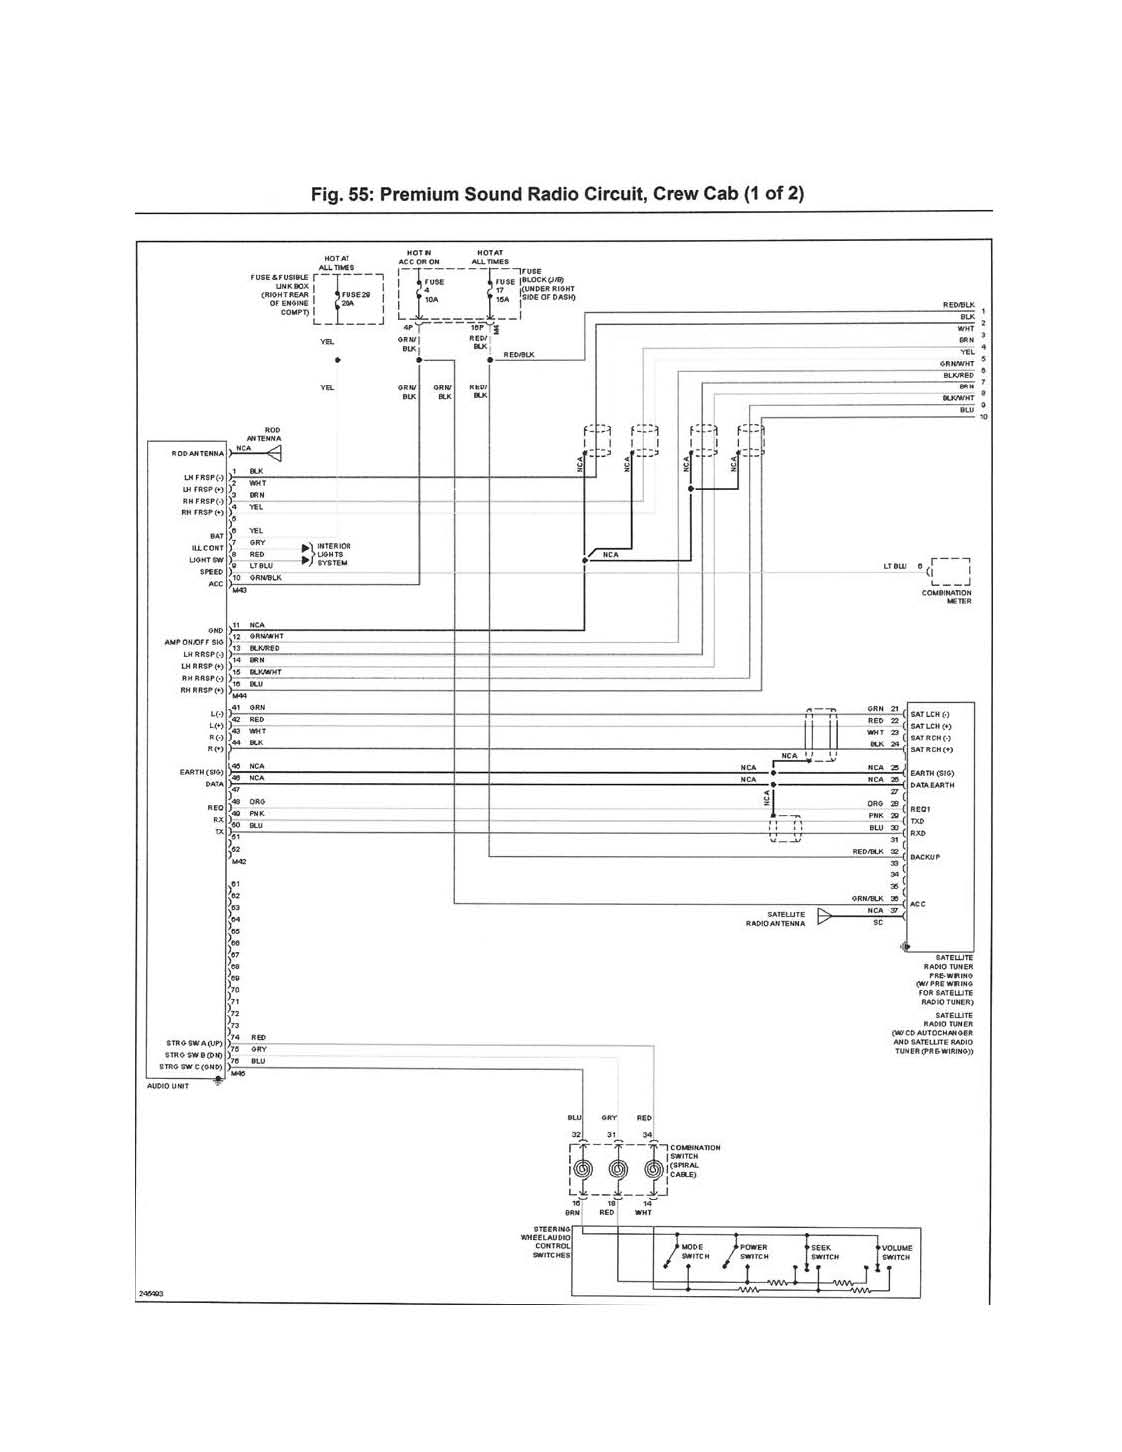 2005 nissan pathfinder radio wiring diagram wall outlet 2000 frontier